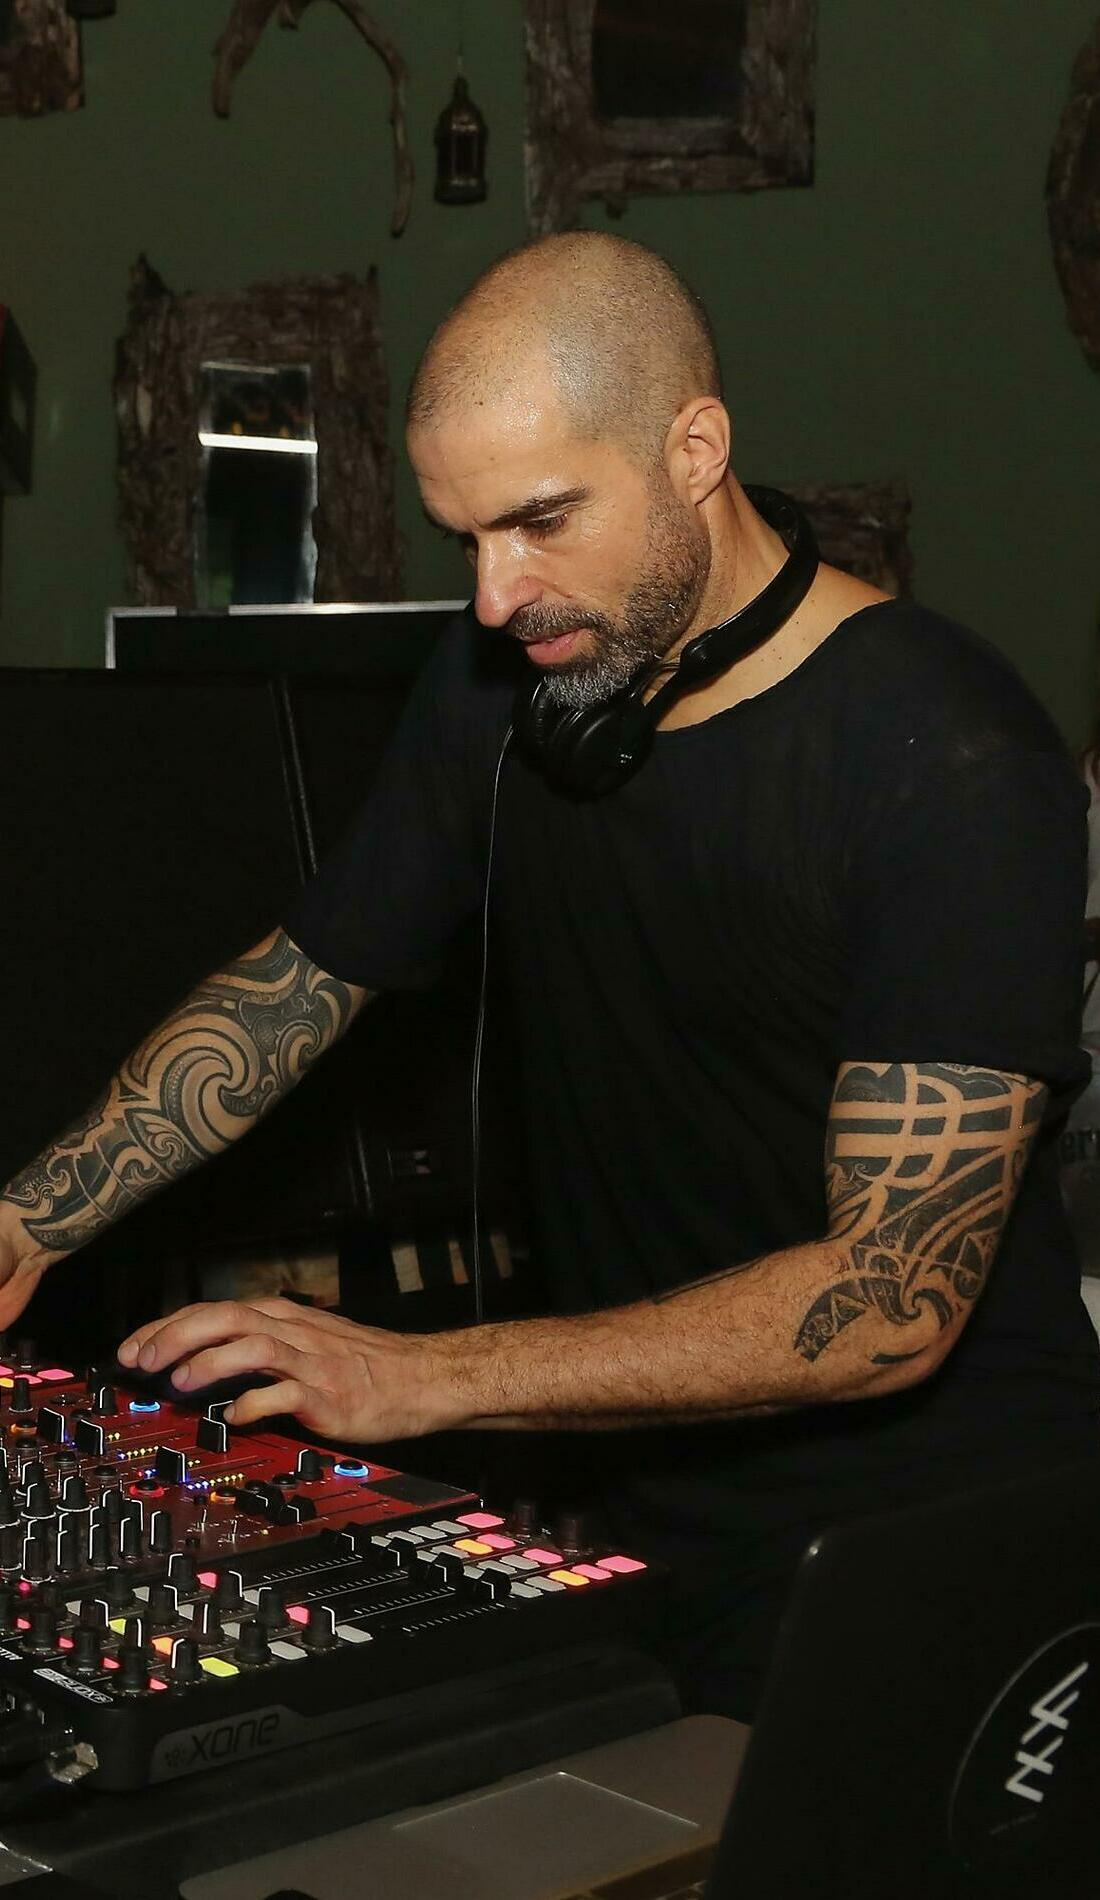 A Chris Liebing live event